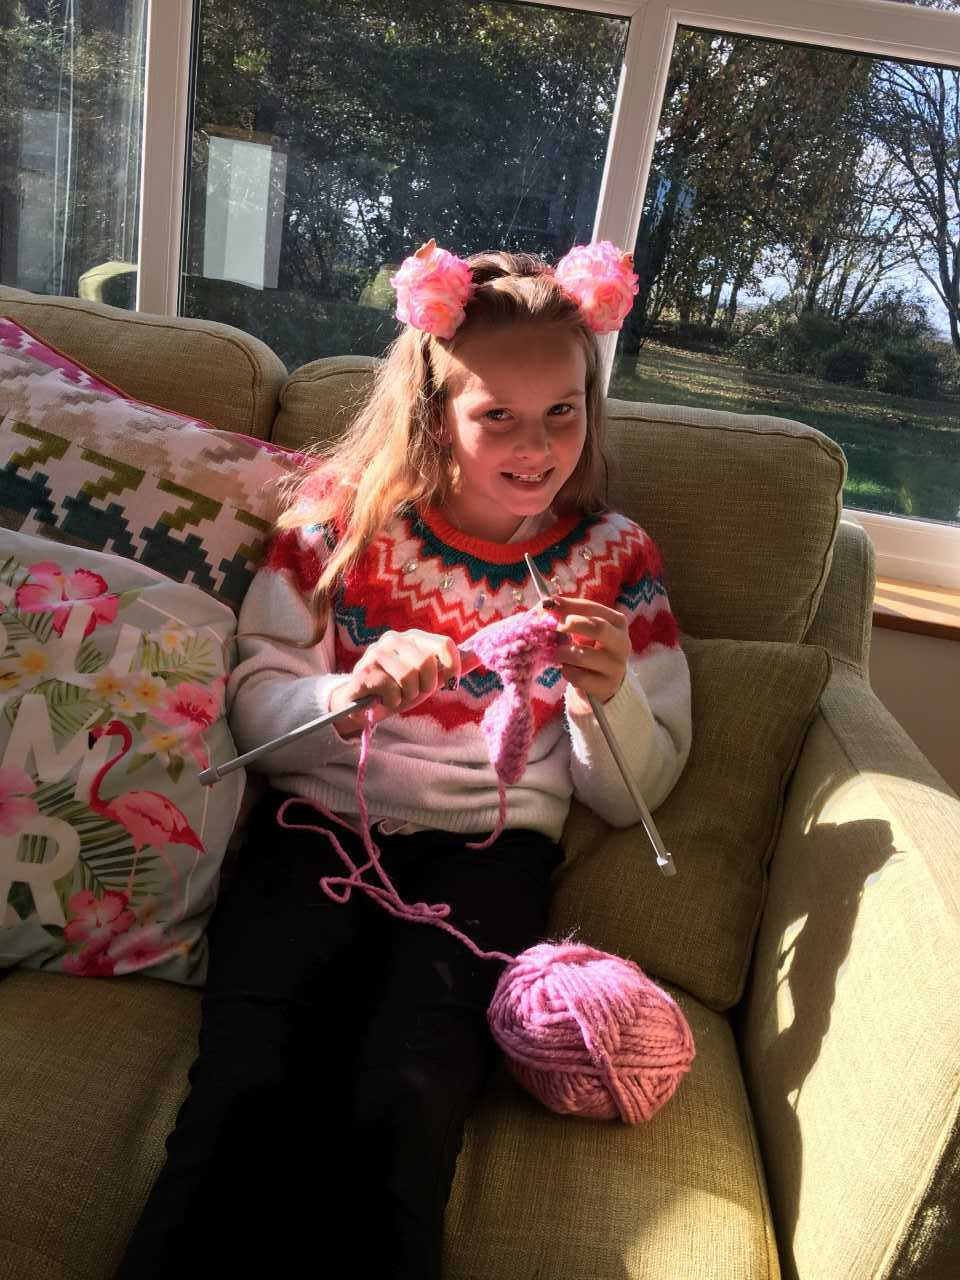 Freya Rands is knitting colourful hats, scarves, headbands and mittens in memory of her cousin Liam Jones.